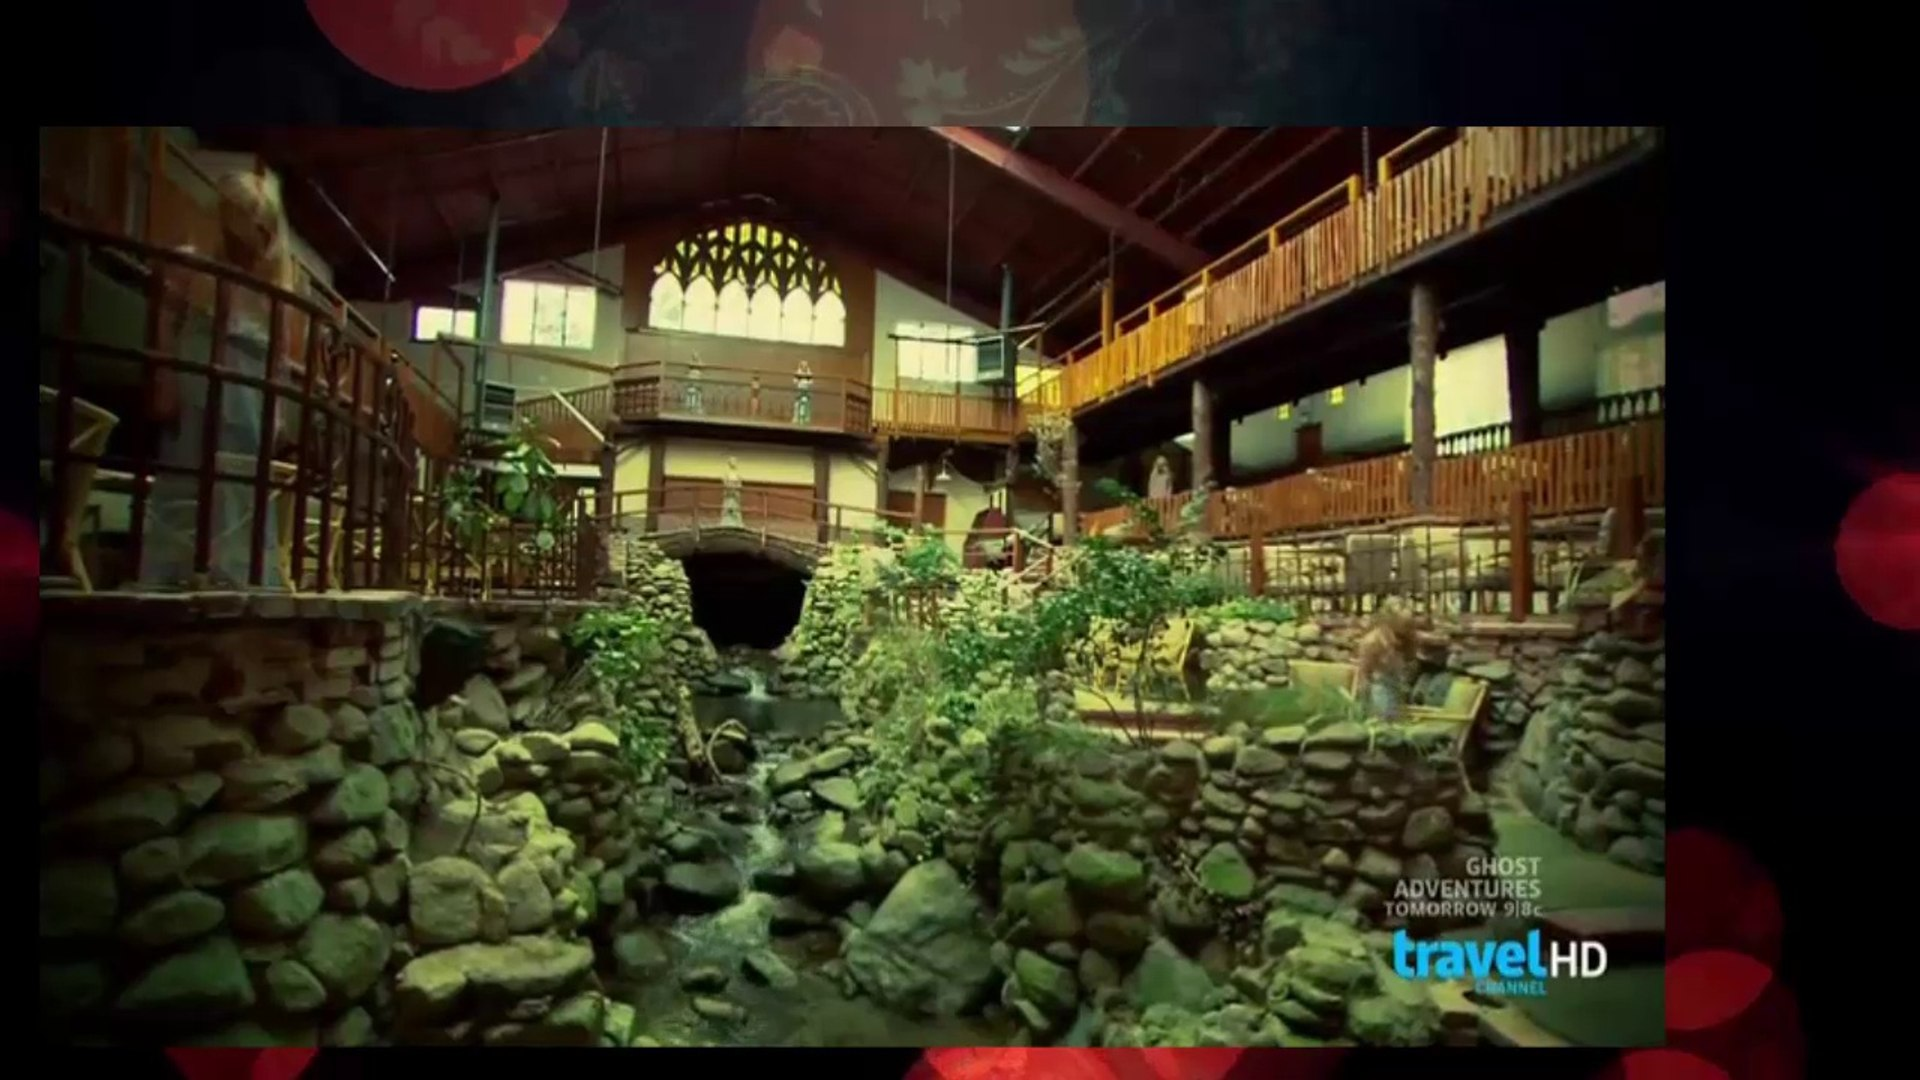 Ghost Adventures S07E08 - Brookdale Lodge